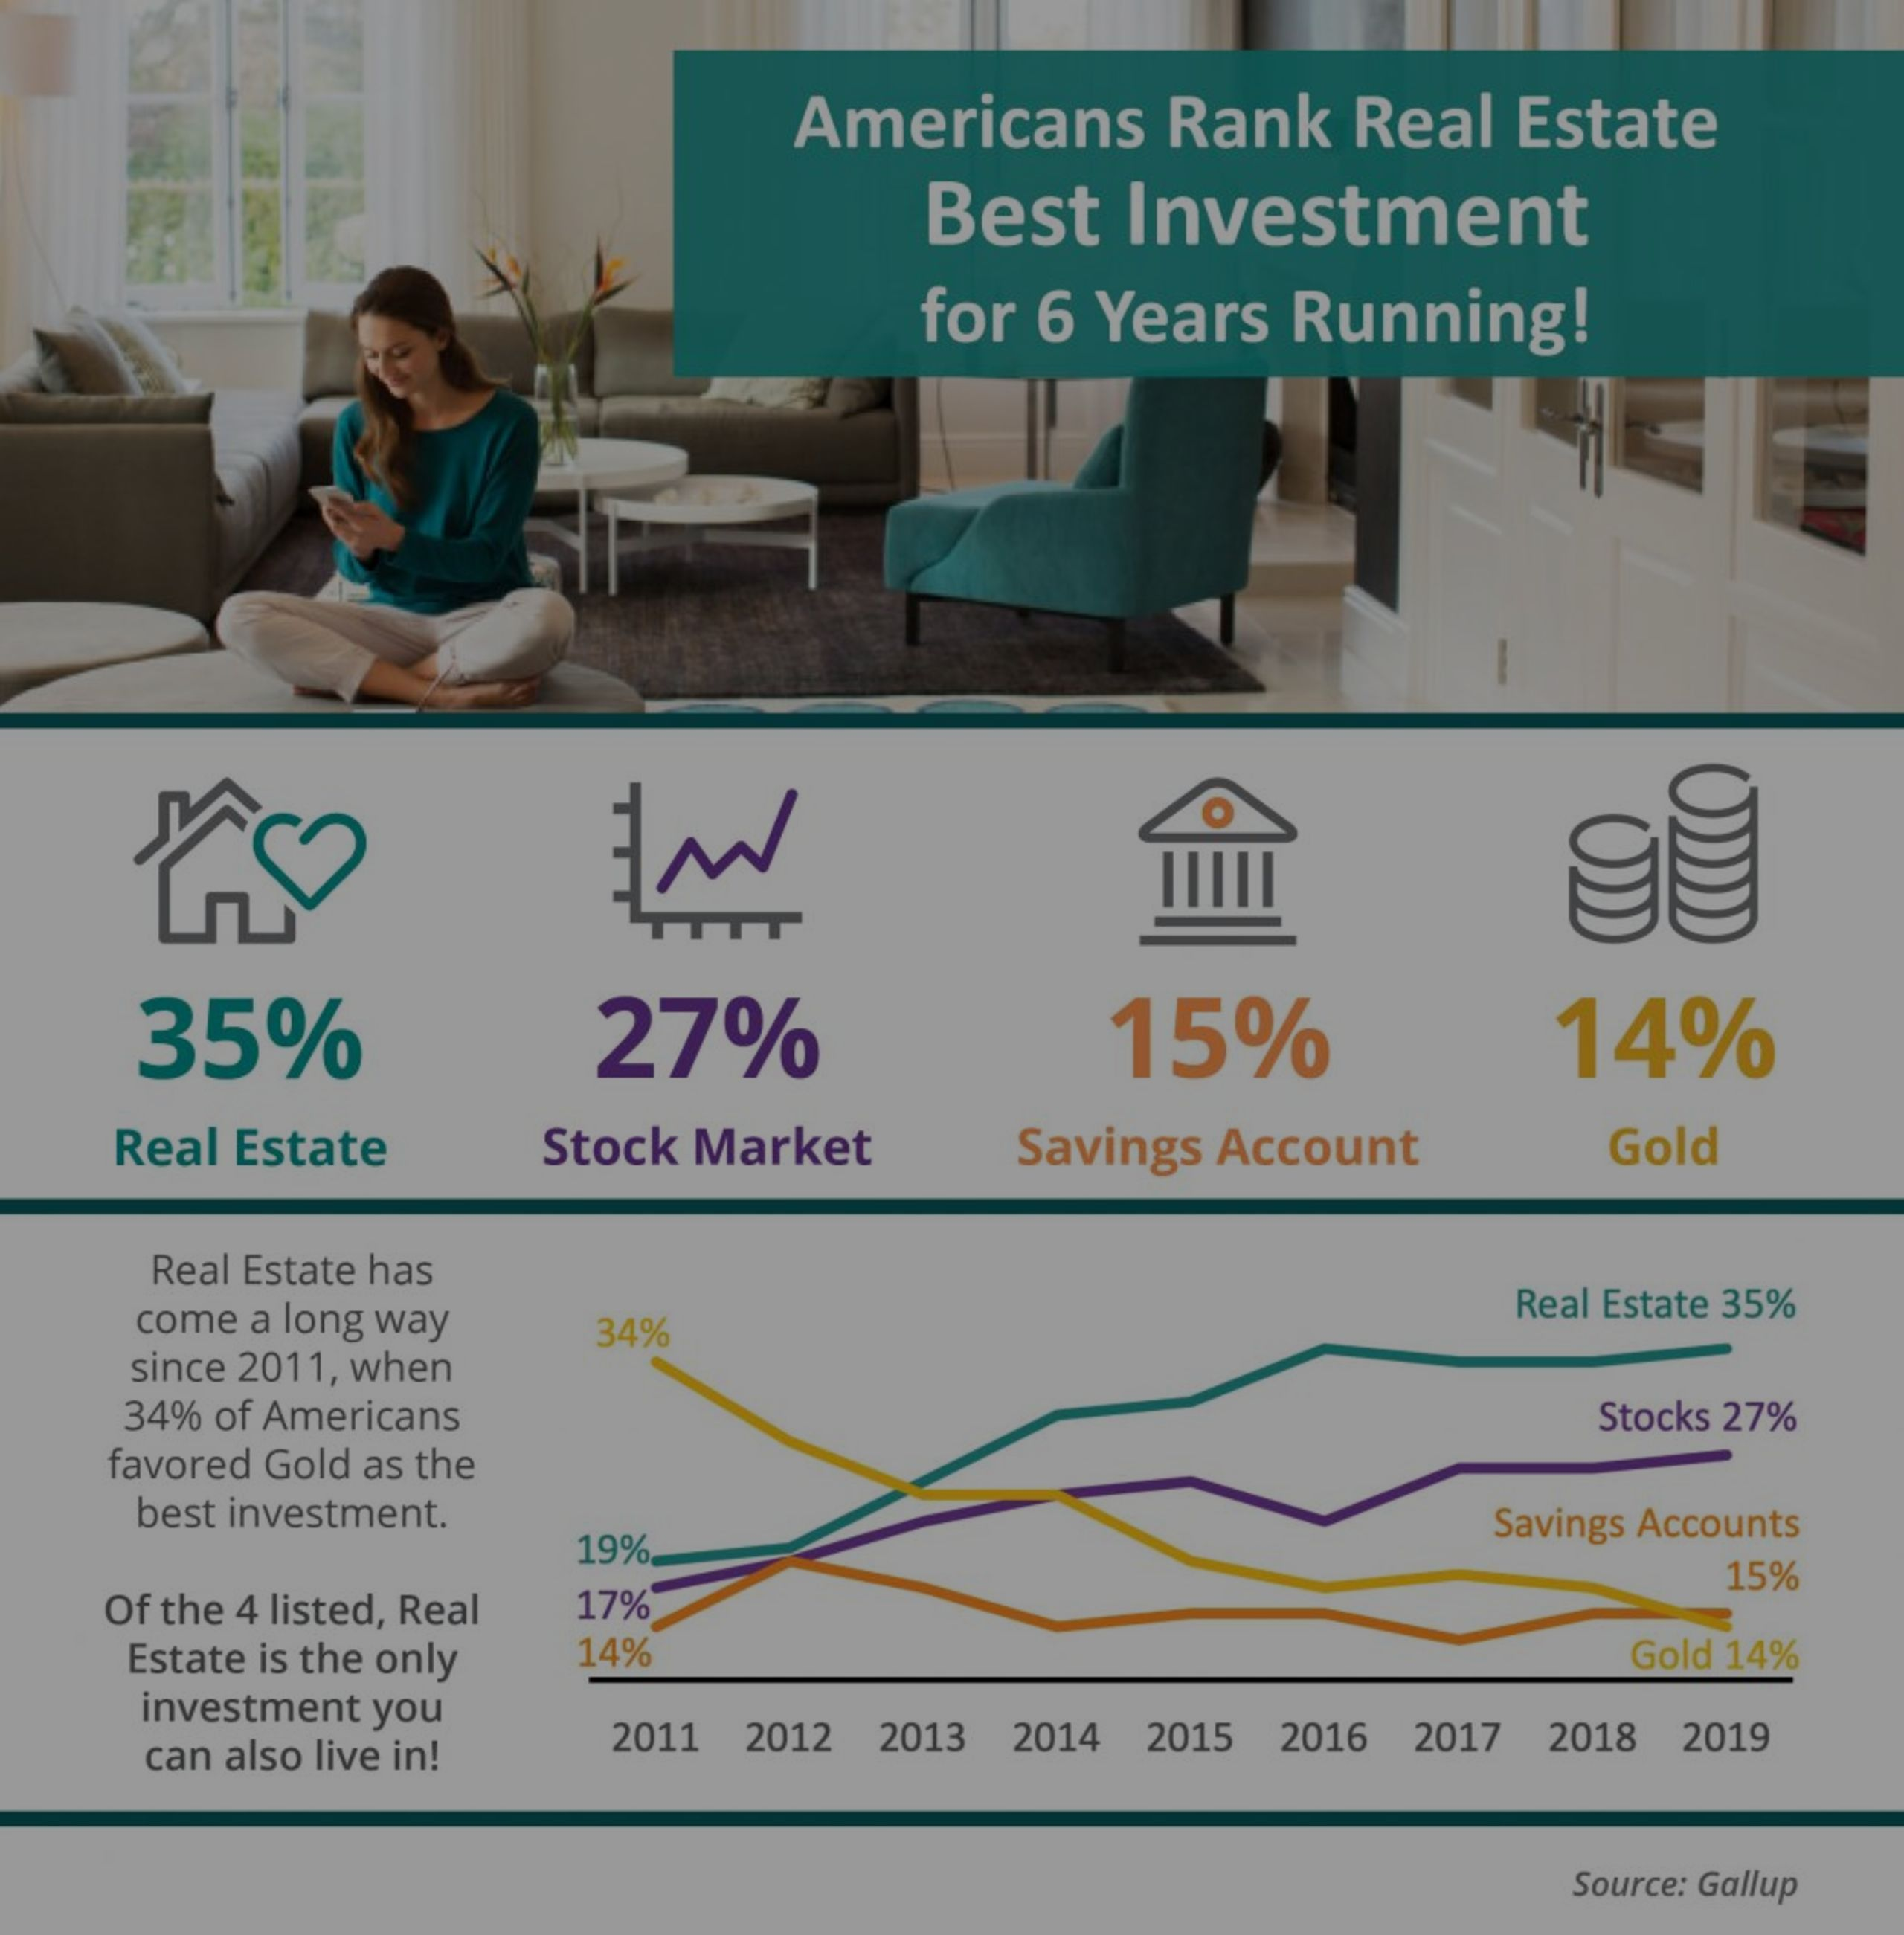 Americans Rank Real Estate Best Investment for 6 Years Running! [INFOGRAPHIC]